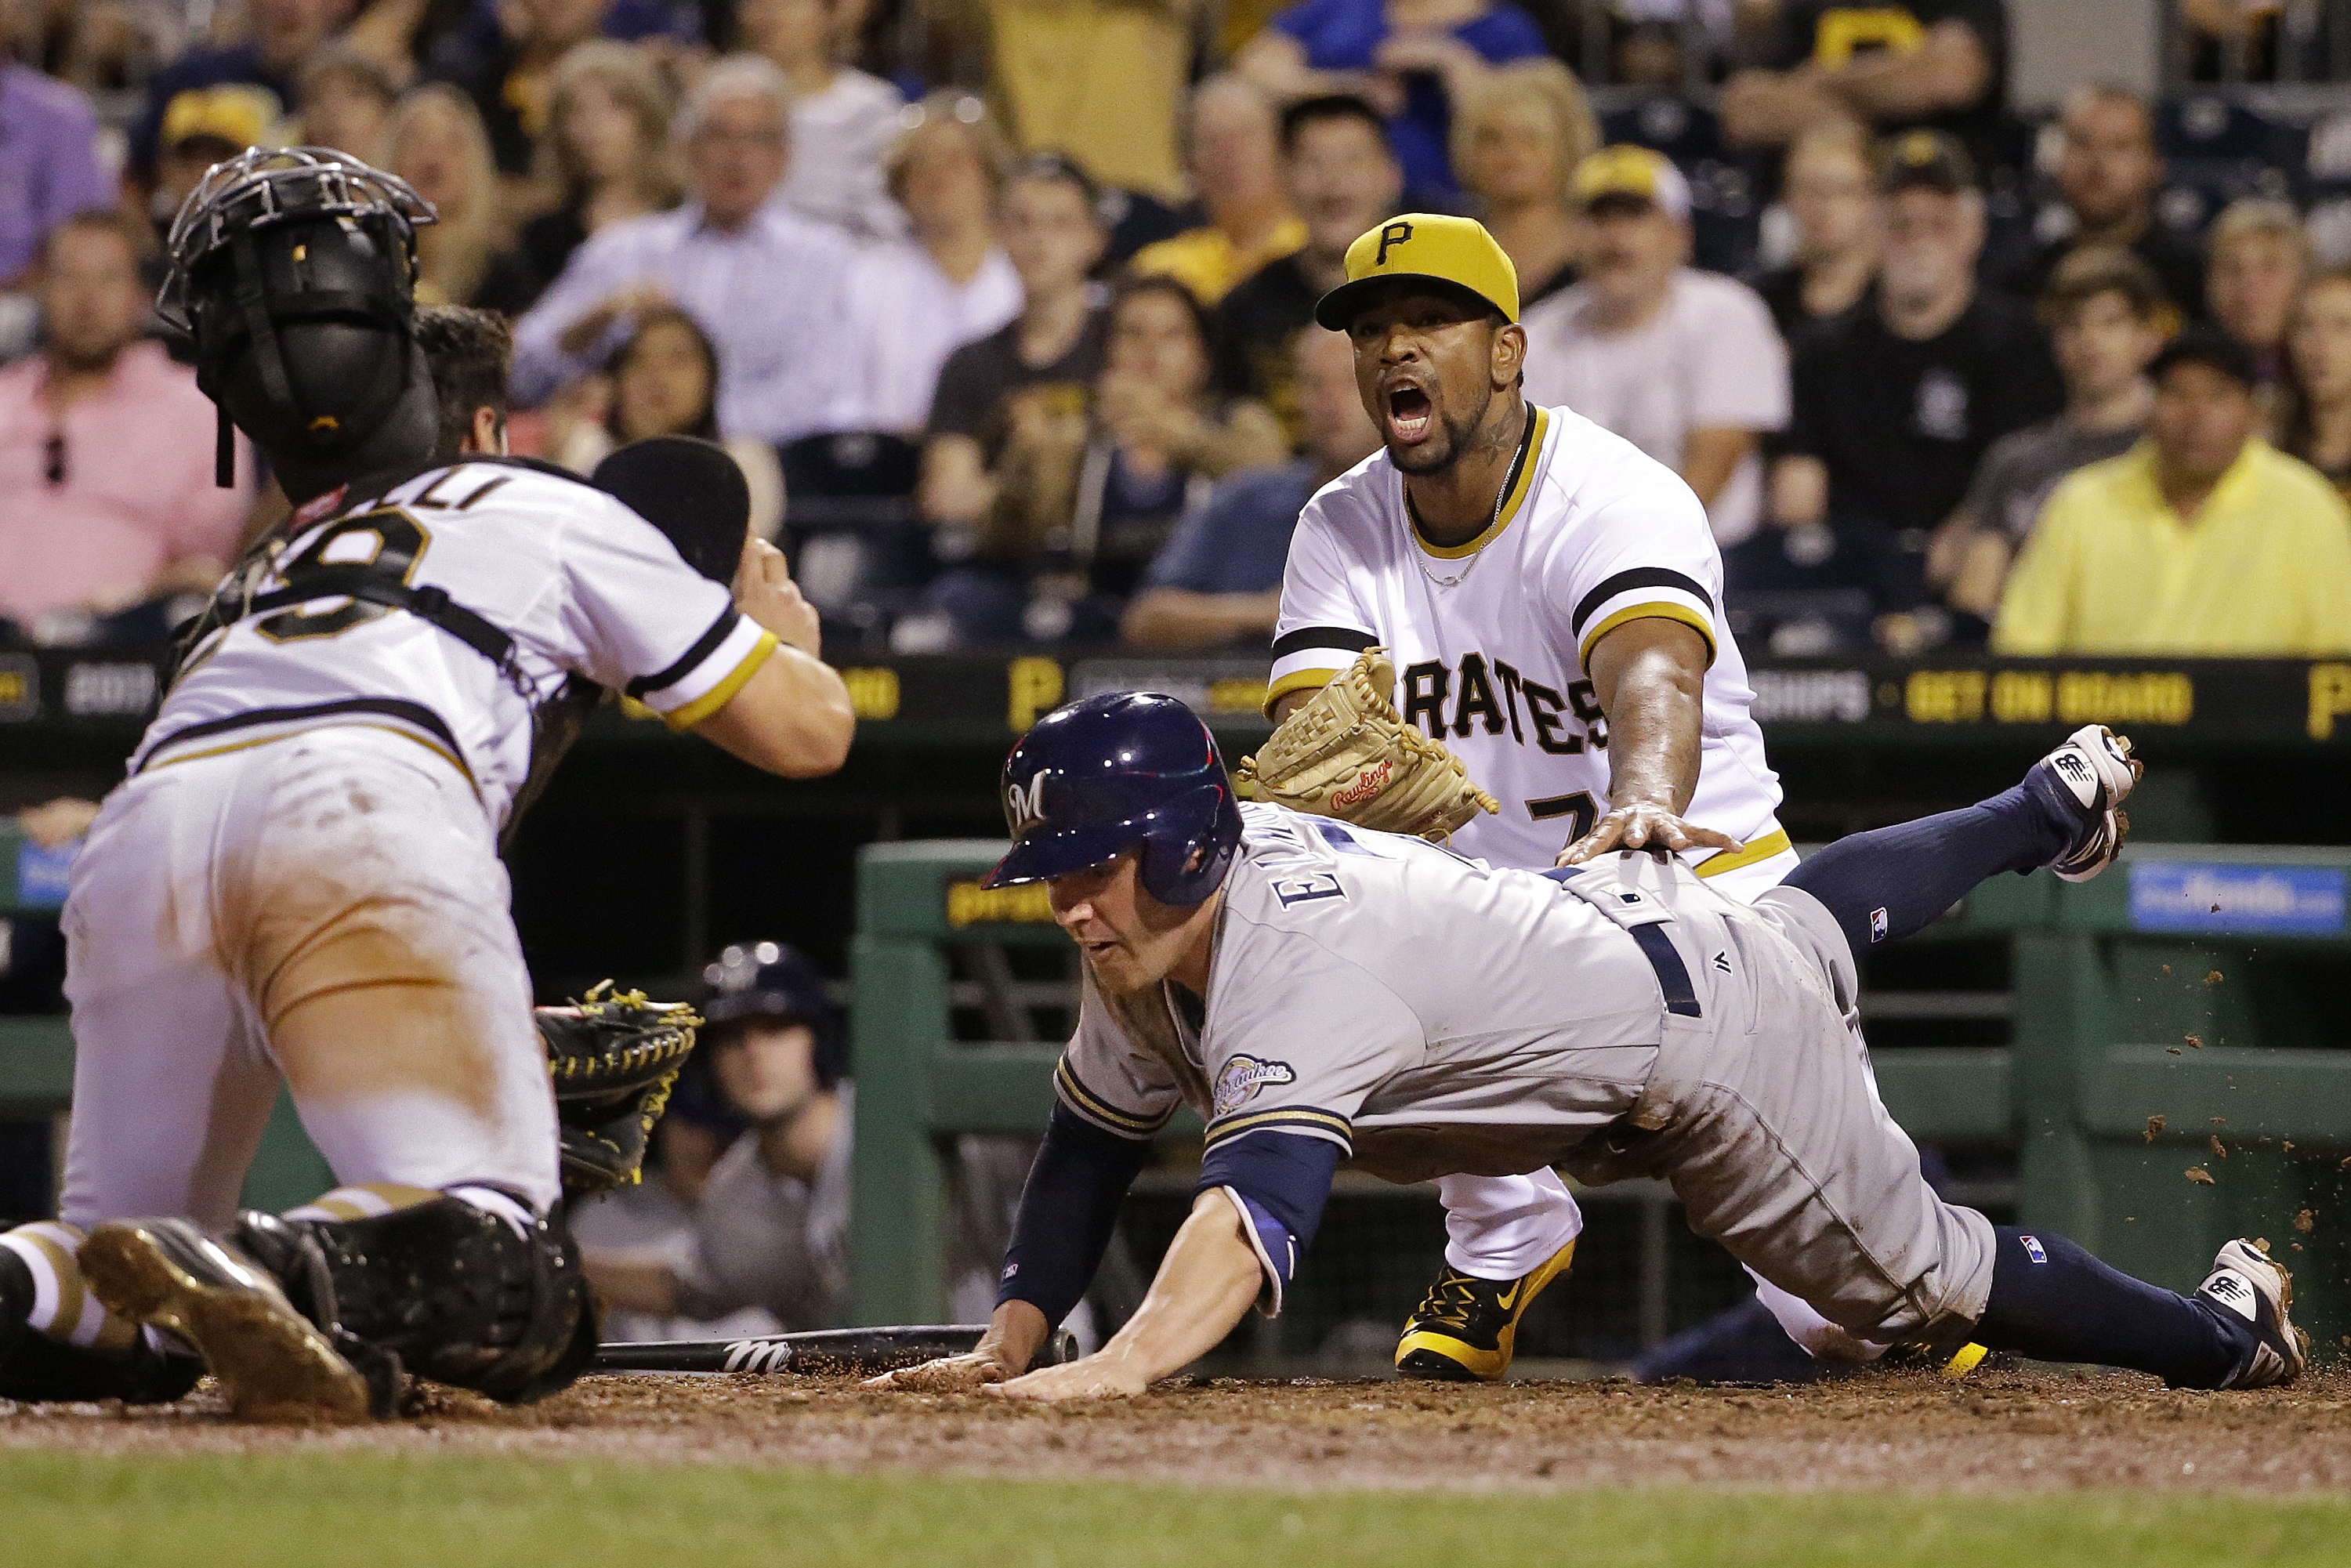 Milwaukee Brewers' Jake Elmore, center, dives back to touch home plate after sliding past it as Pittsburgh Pirates catcher Francisco Cervelli, left, attempts to make the tag with pitcher Felipe Rivero, rear, during the eighth inning of a baseball game in